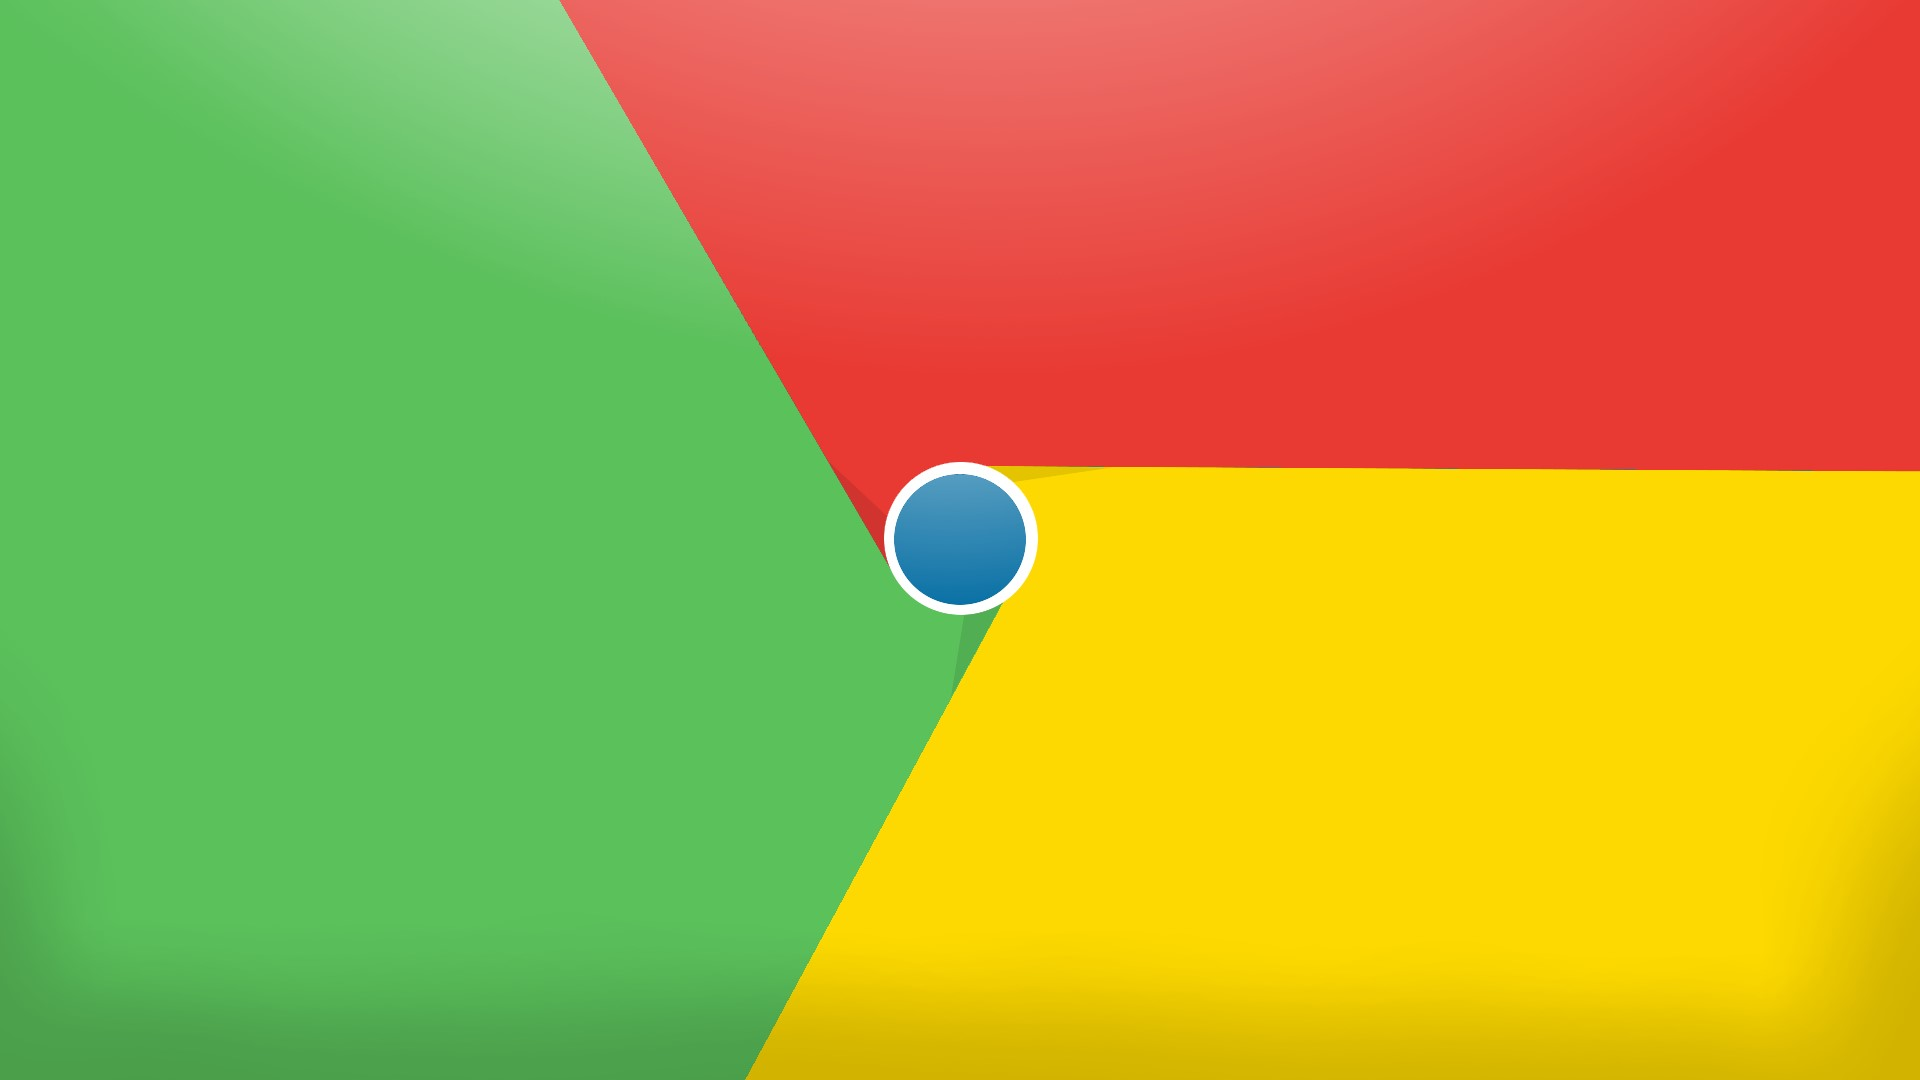 Logo colores Chrome para Android